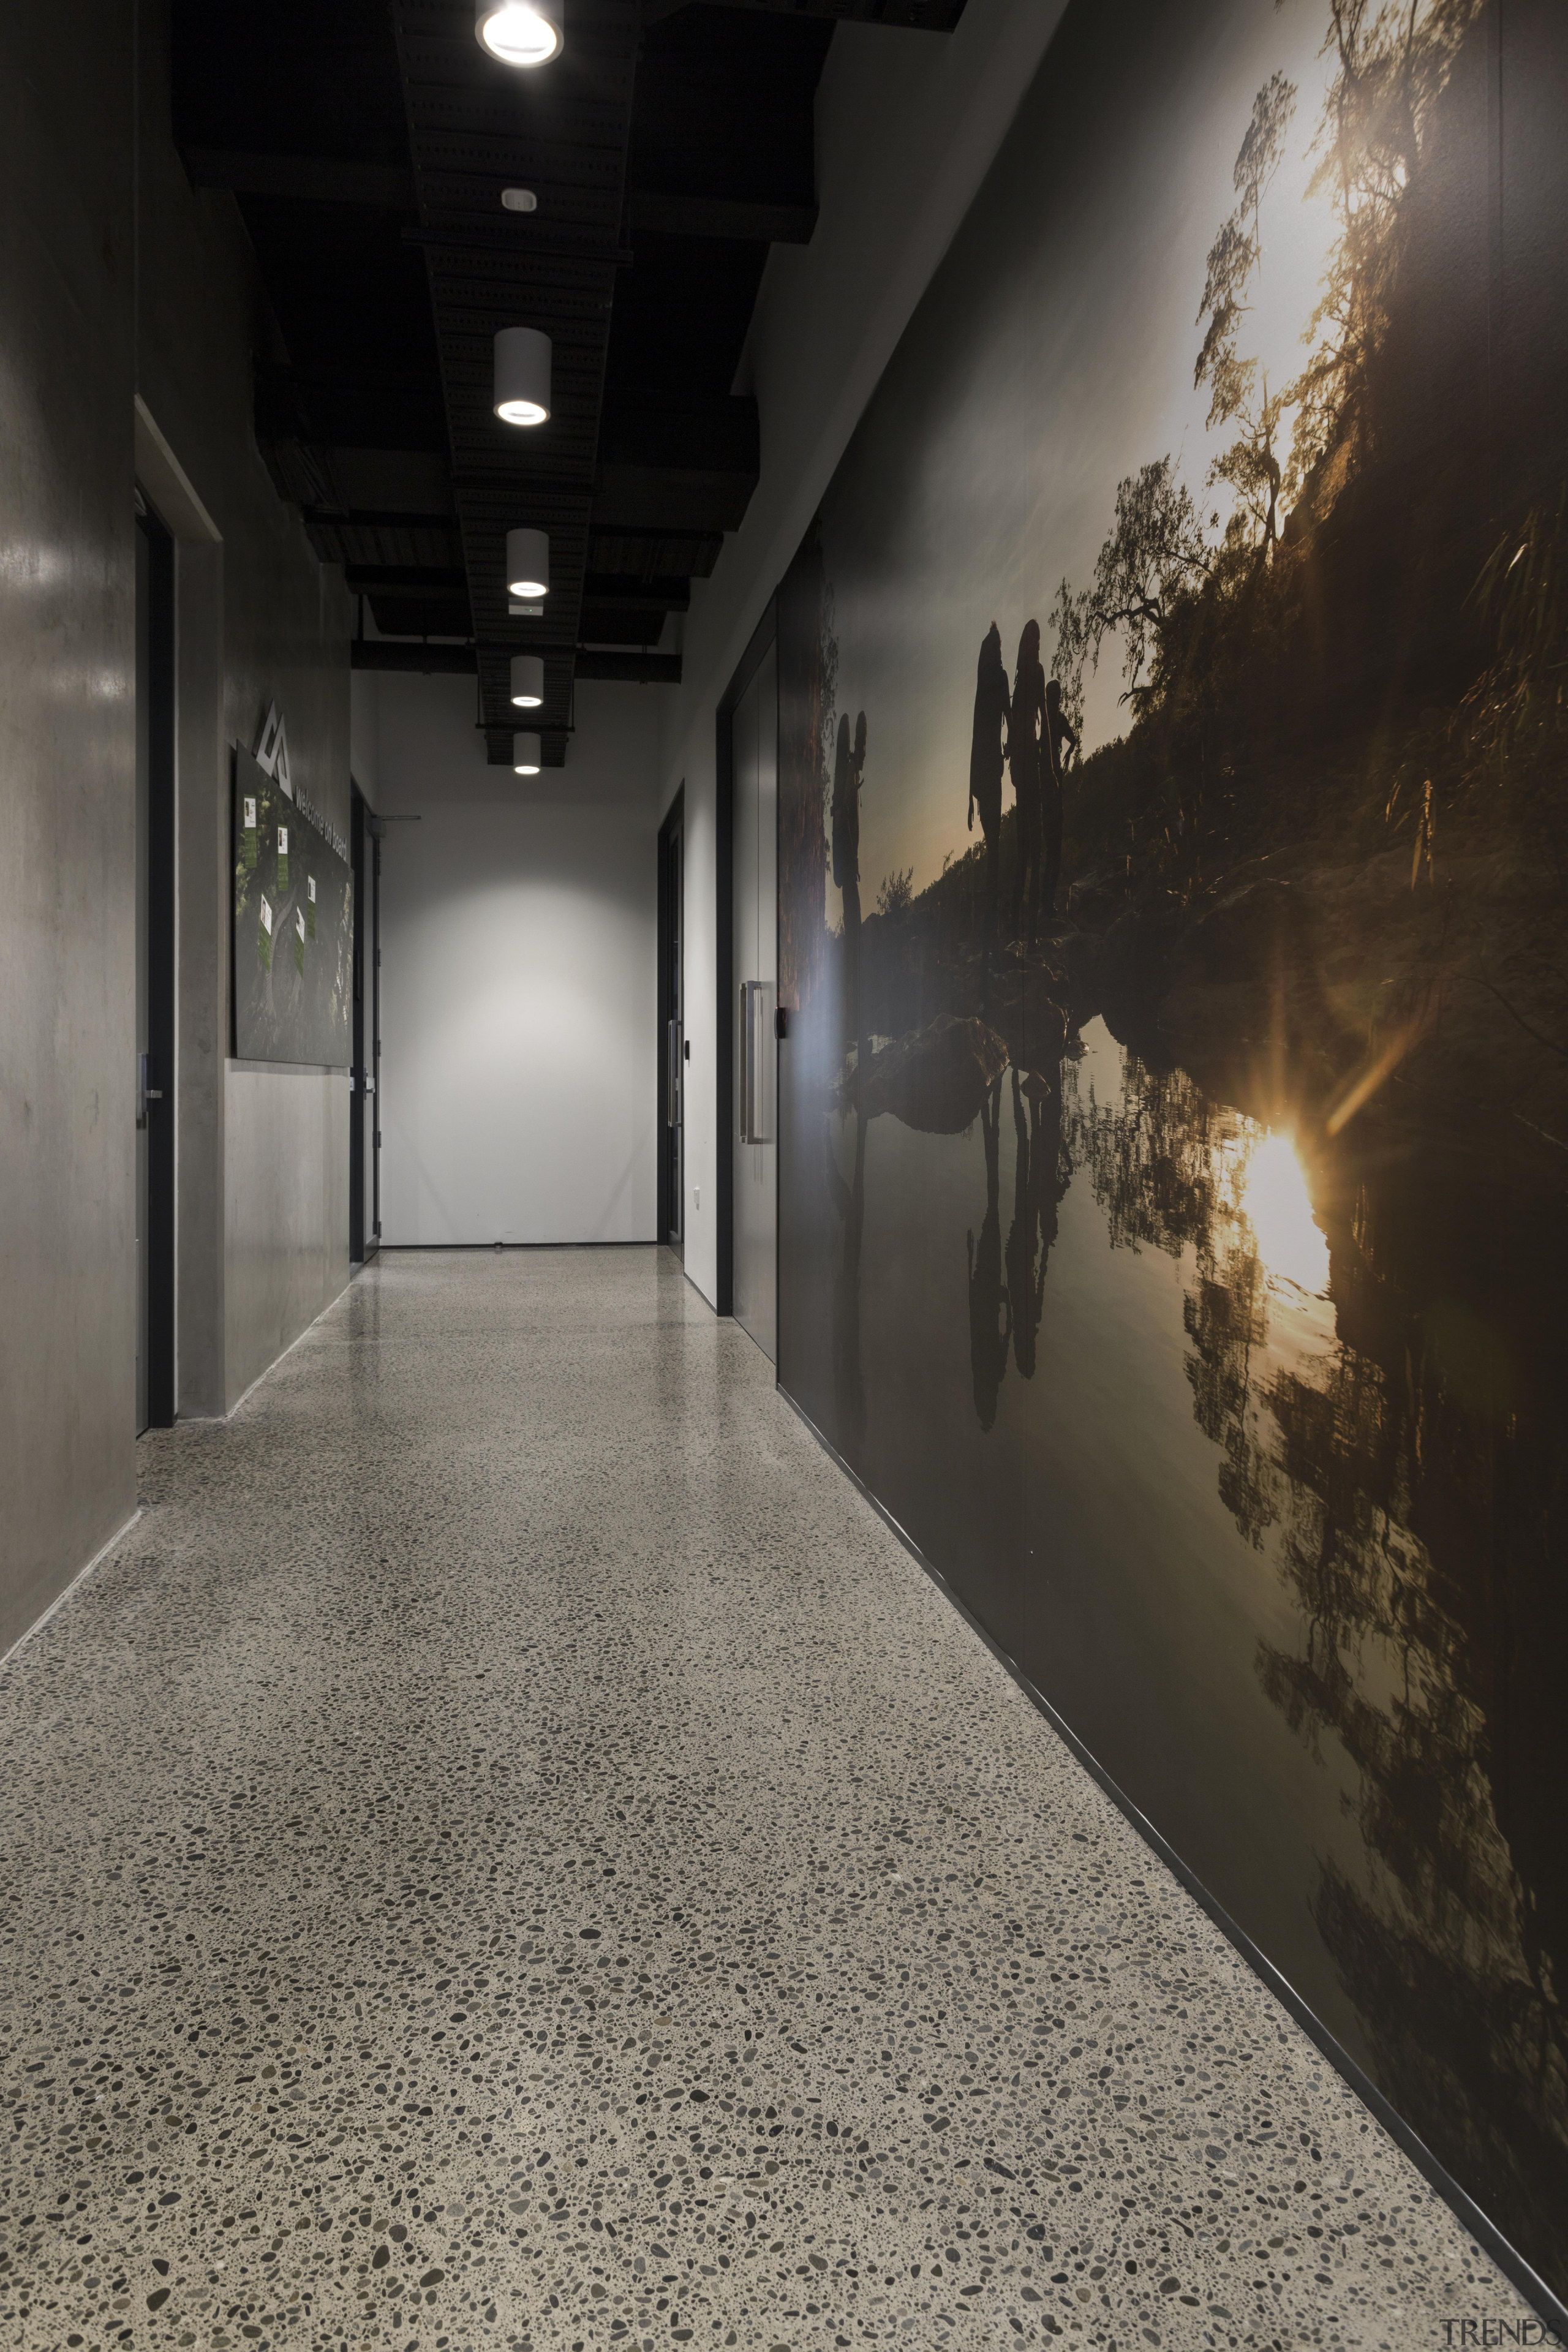 Polished Concrete Floors And An Atmospheric Photo Mural Architecture Floor Flooring Light Tour Polished Concrete Concrete Floors Polished Concrete Flooring